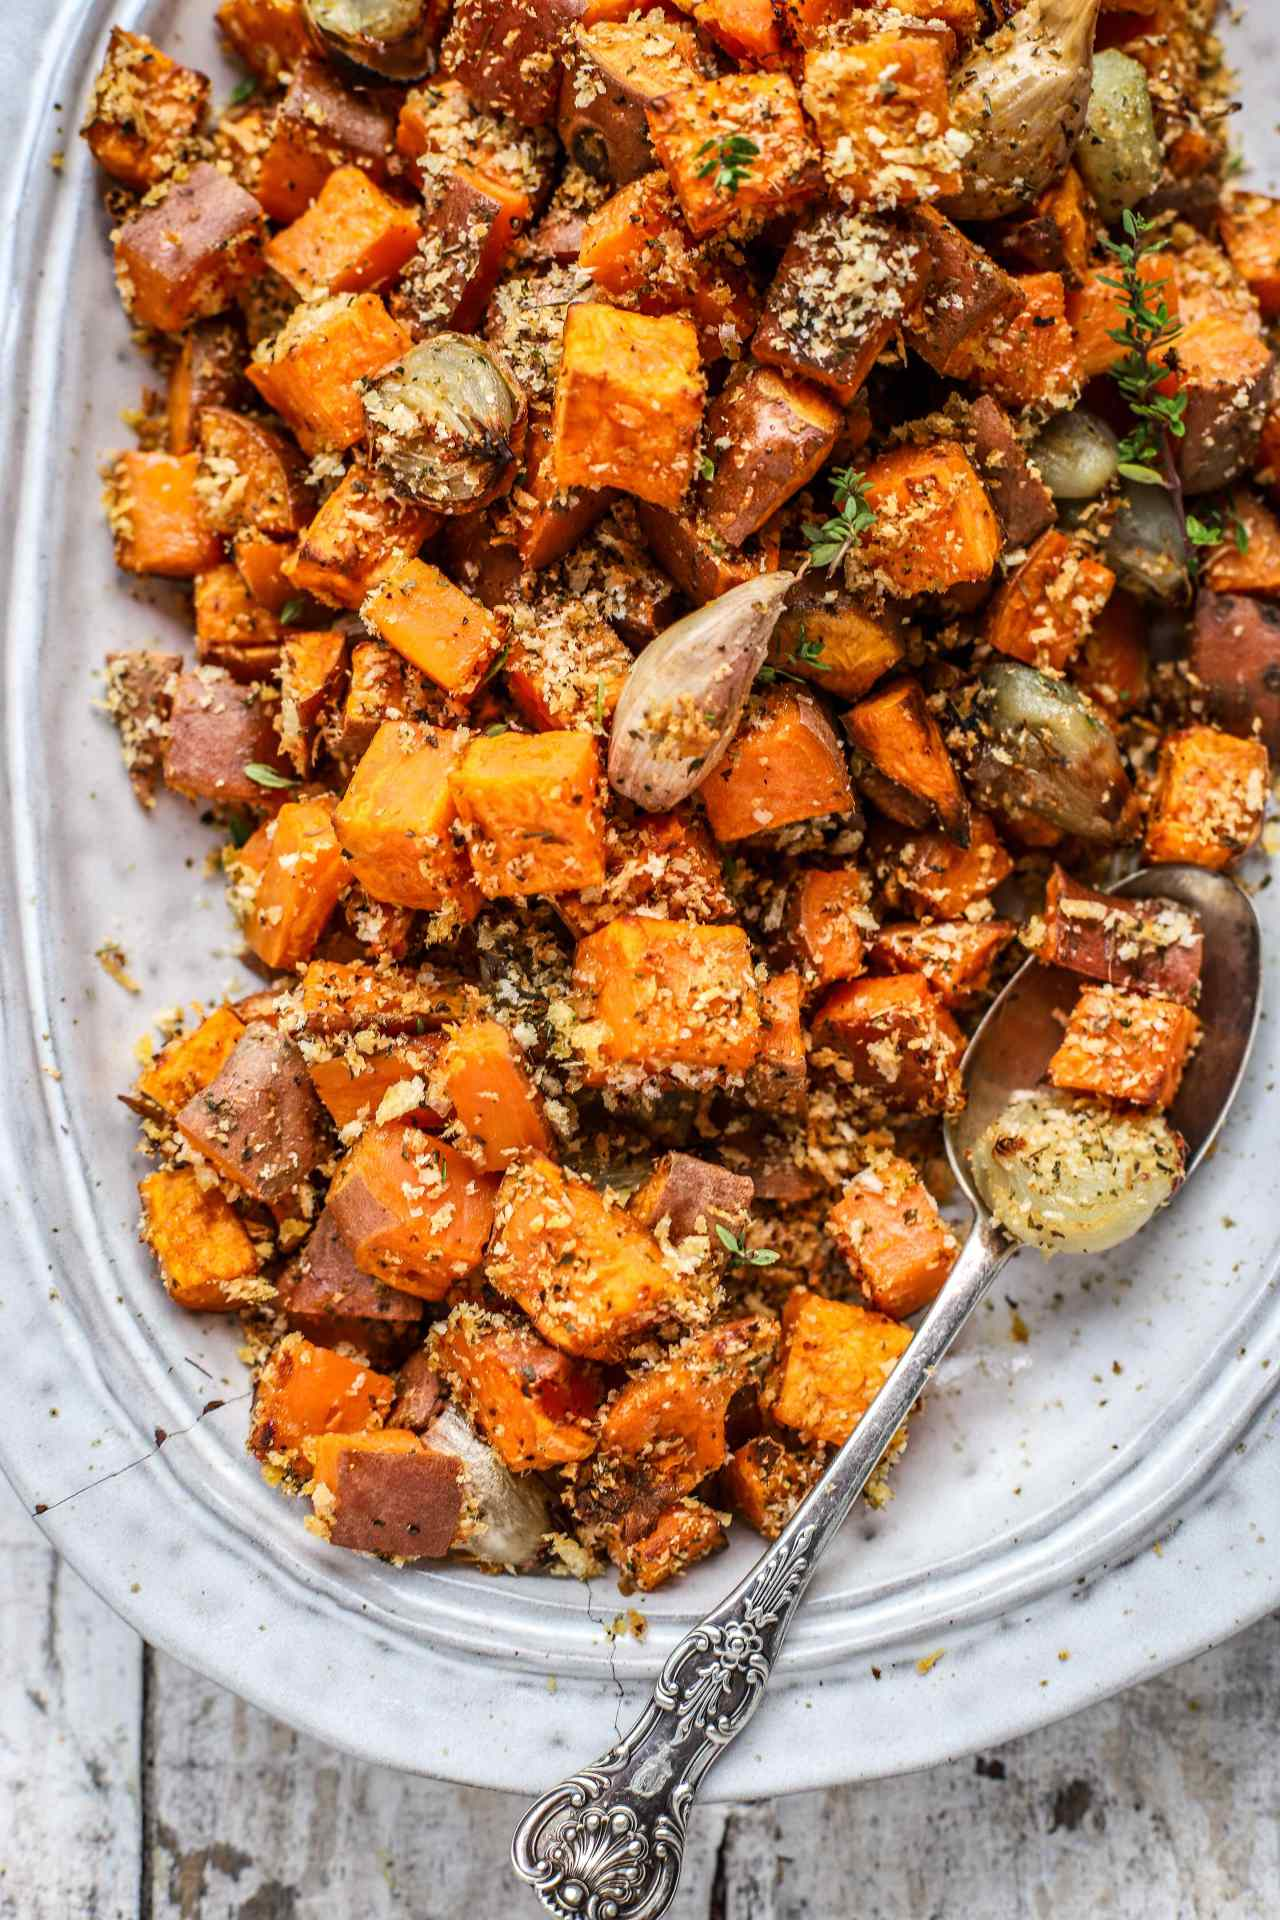 Roasted Parmigiano Reggiano Sweet Potatoes and Shallots are a super-simple sweet, savoury, crunchy, and soft nutritious side dish that will have your family asking for seconds. These would be great for any dinner - festive or everyday. #sidedish #sweetpotatoes #parmesan #easyrecipe #family #food